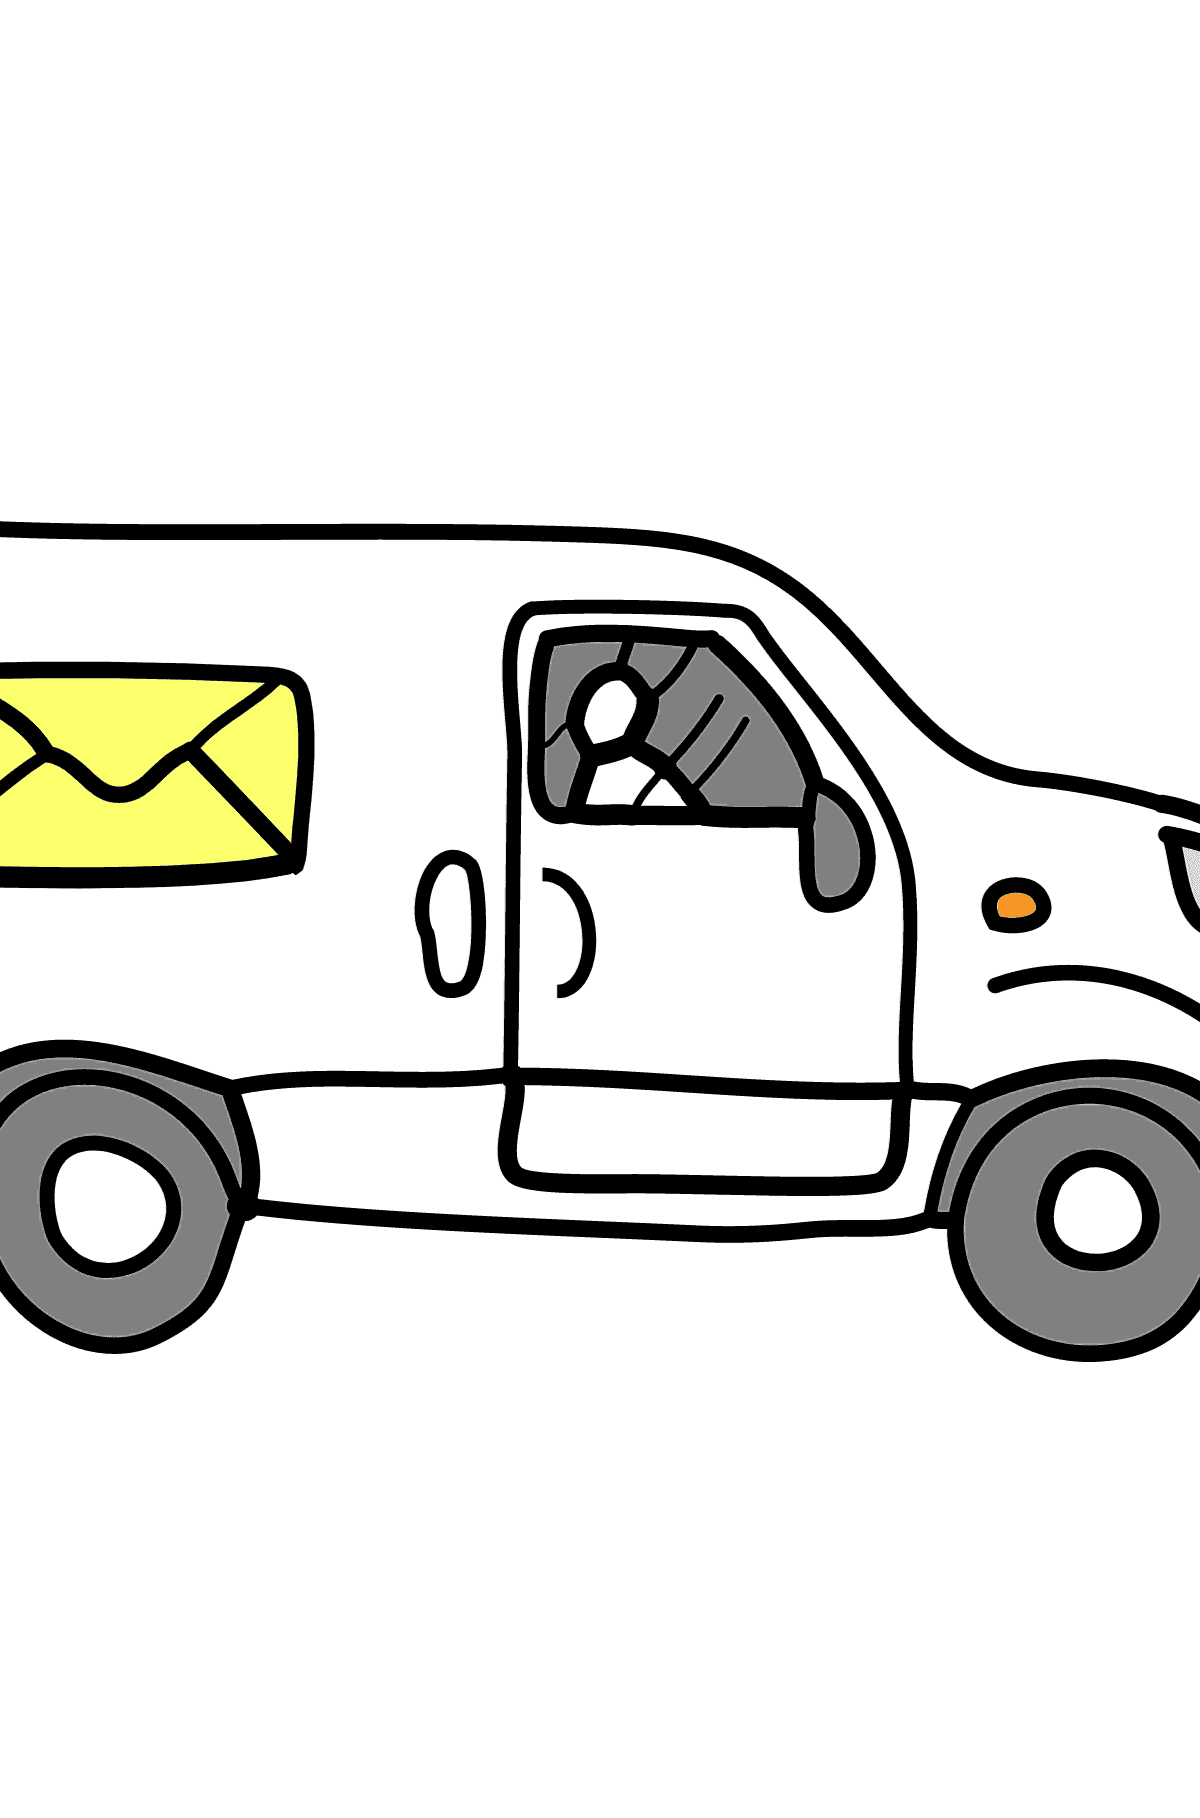 Coloring Page - A Car is Carrying Mail - Coloring Pages for Children